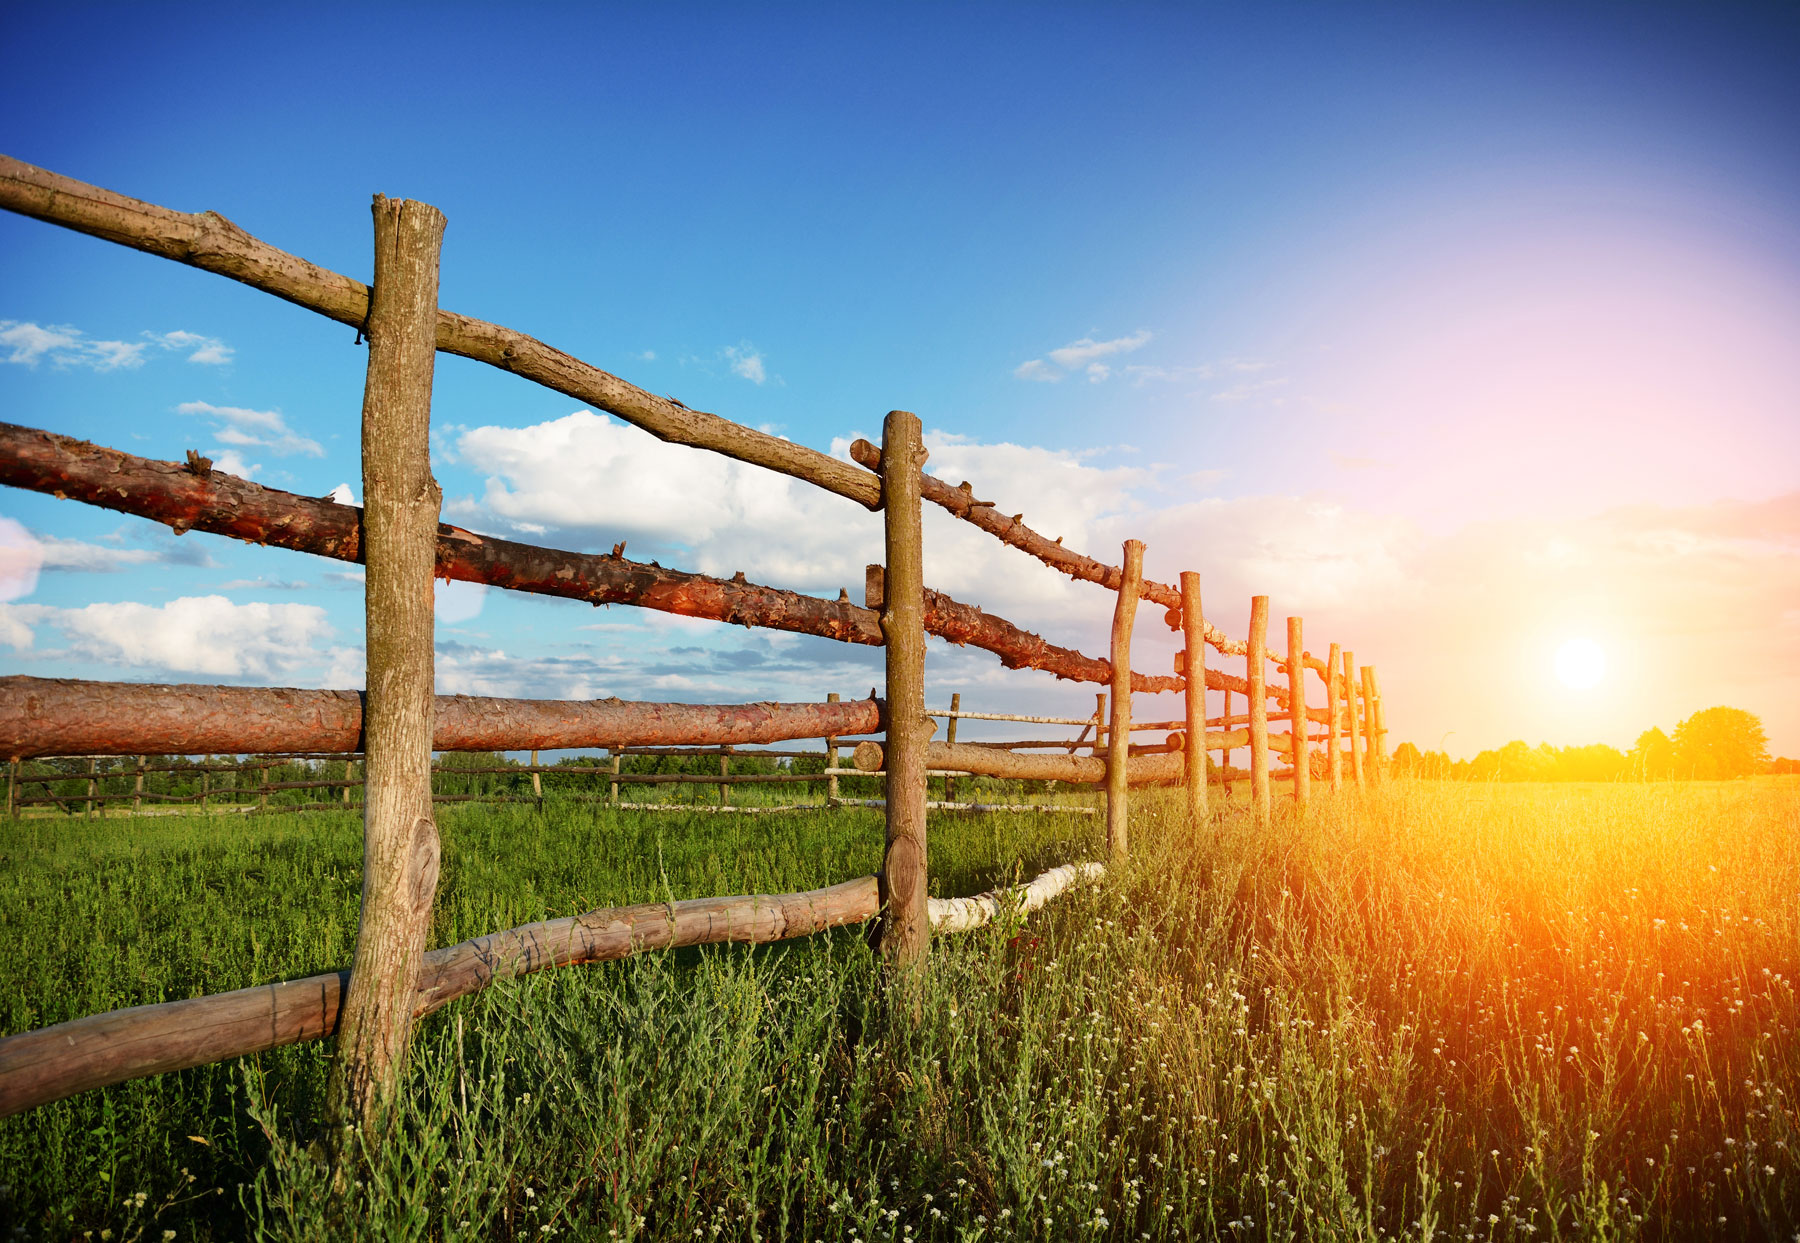 fence in the countryside at sunset